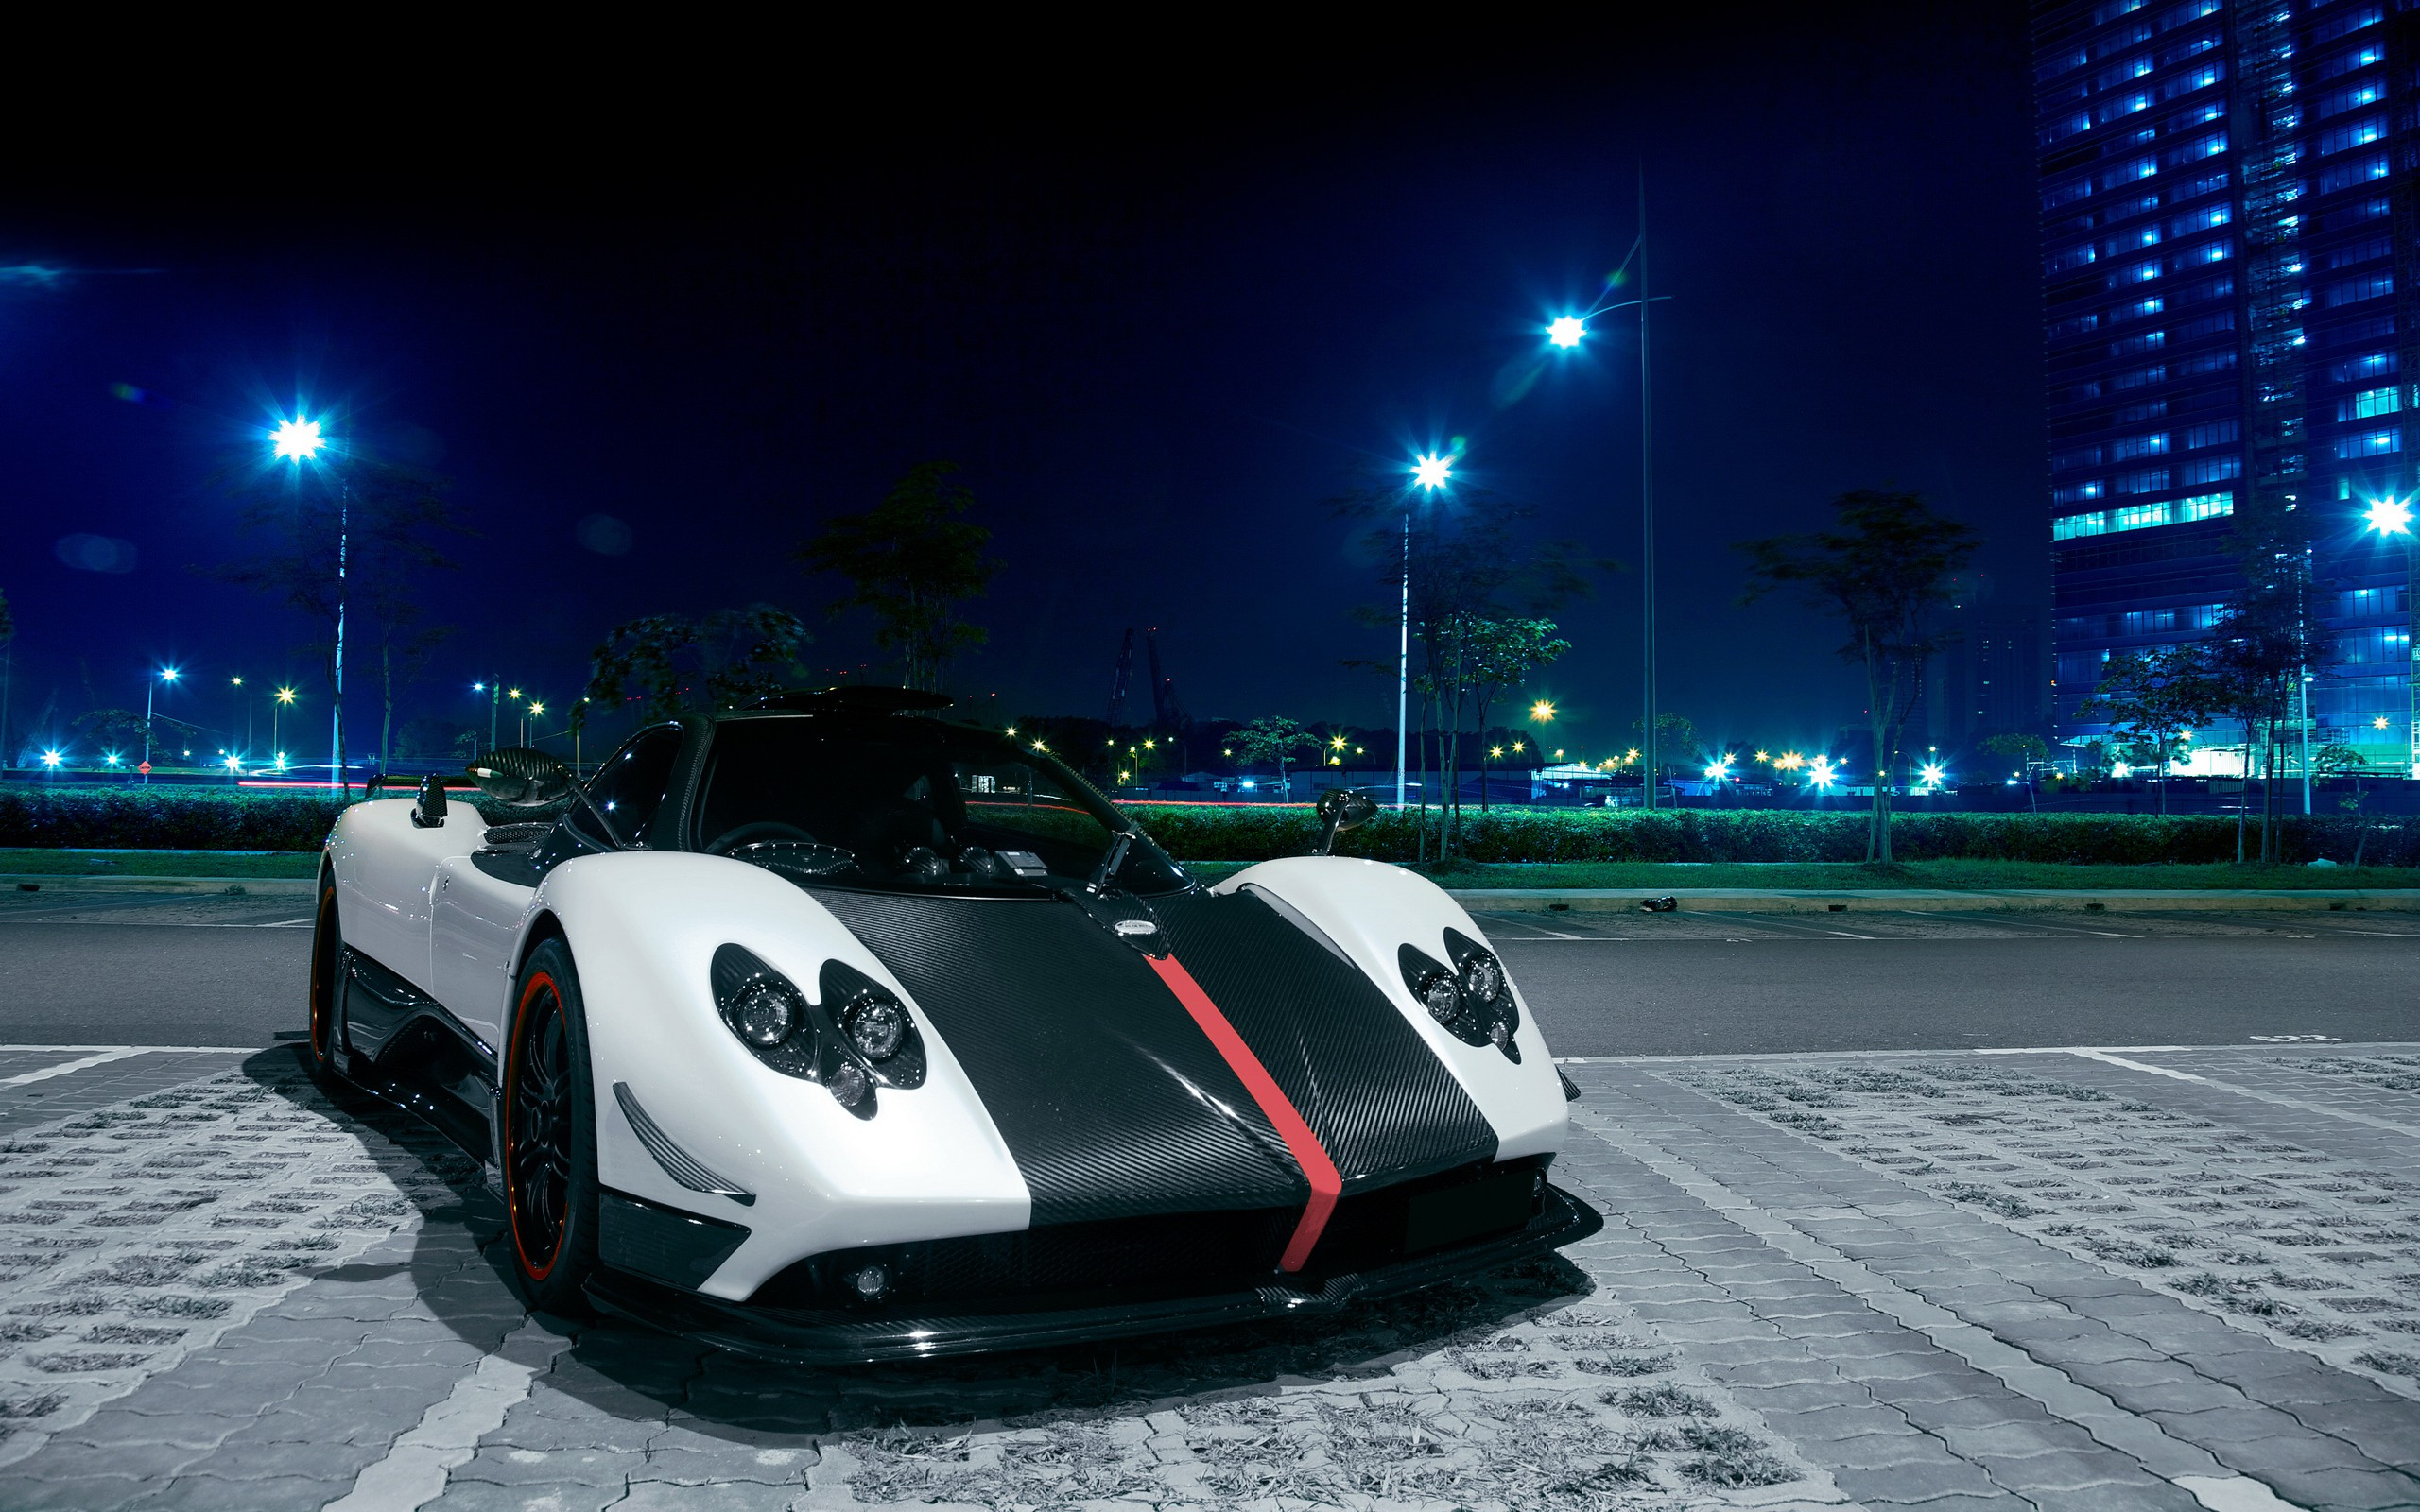 Background Car Hd Wallpapers Cities: Pagani Zonda Full HD Wallpaper And Background Image